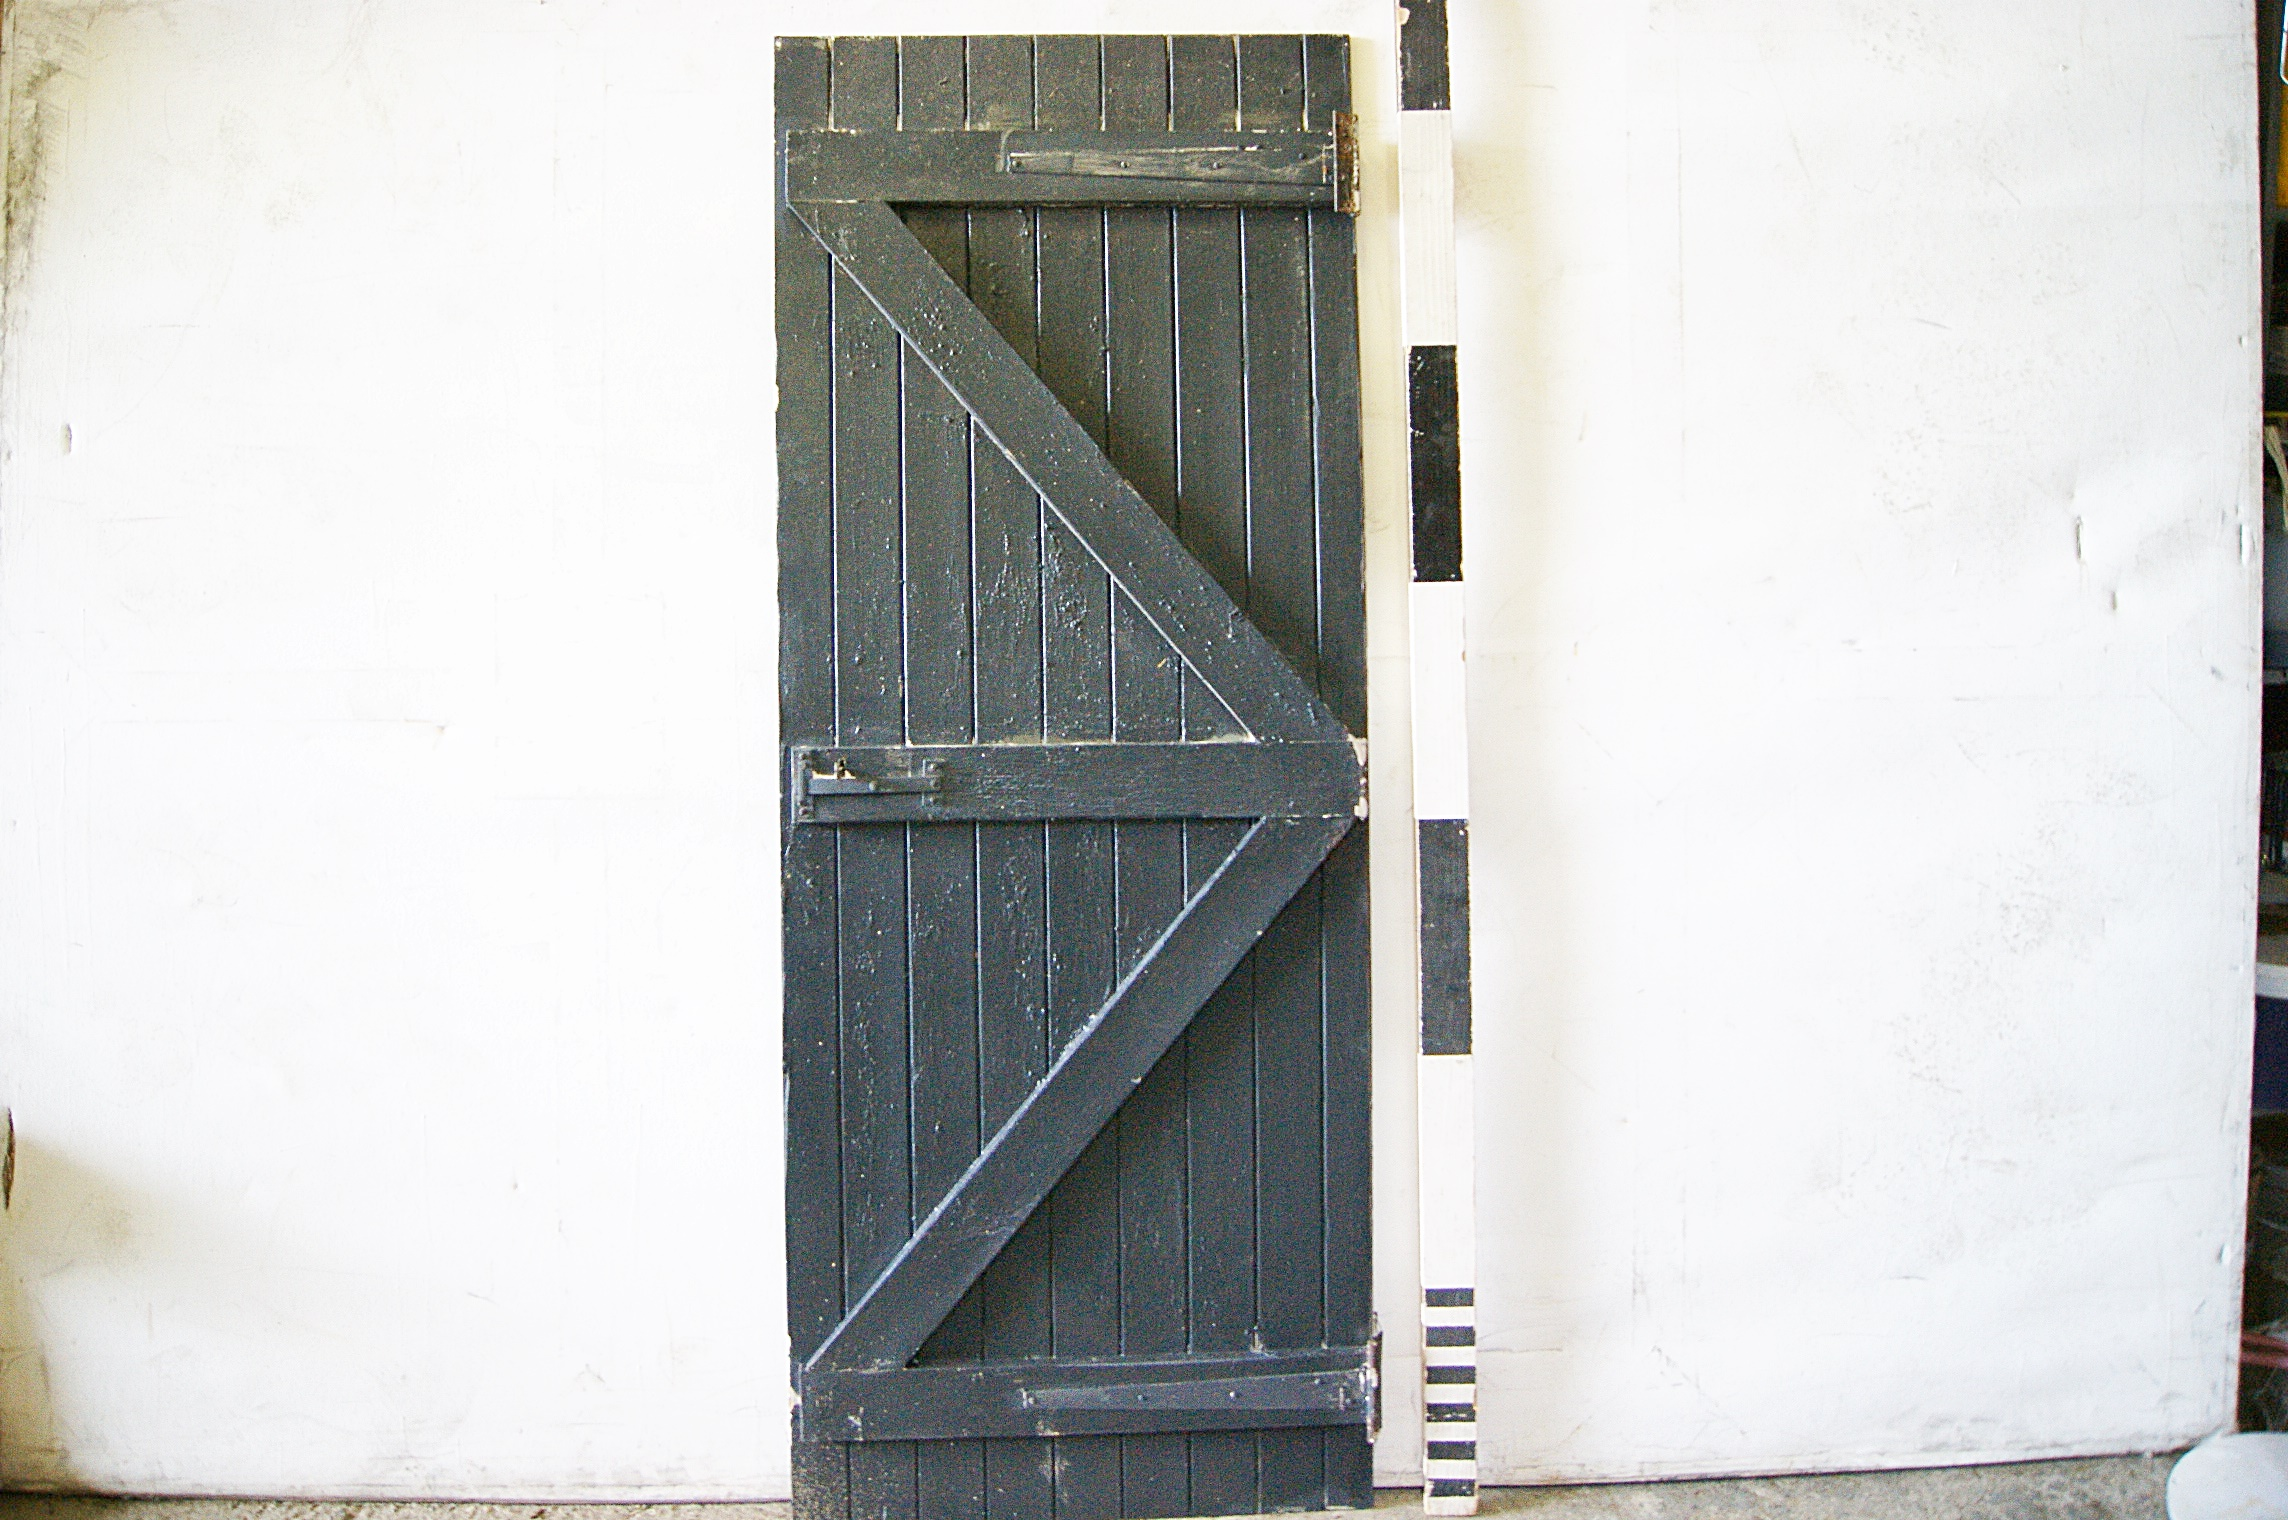 1100067 Wood Ledge And Brace Slatted Door ( H 195cm x 76 ) x 10off & Doors Archives - Stockyard Prop and Backdrop Hire